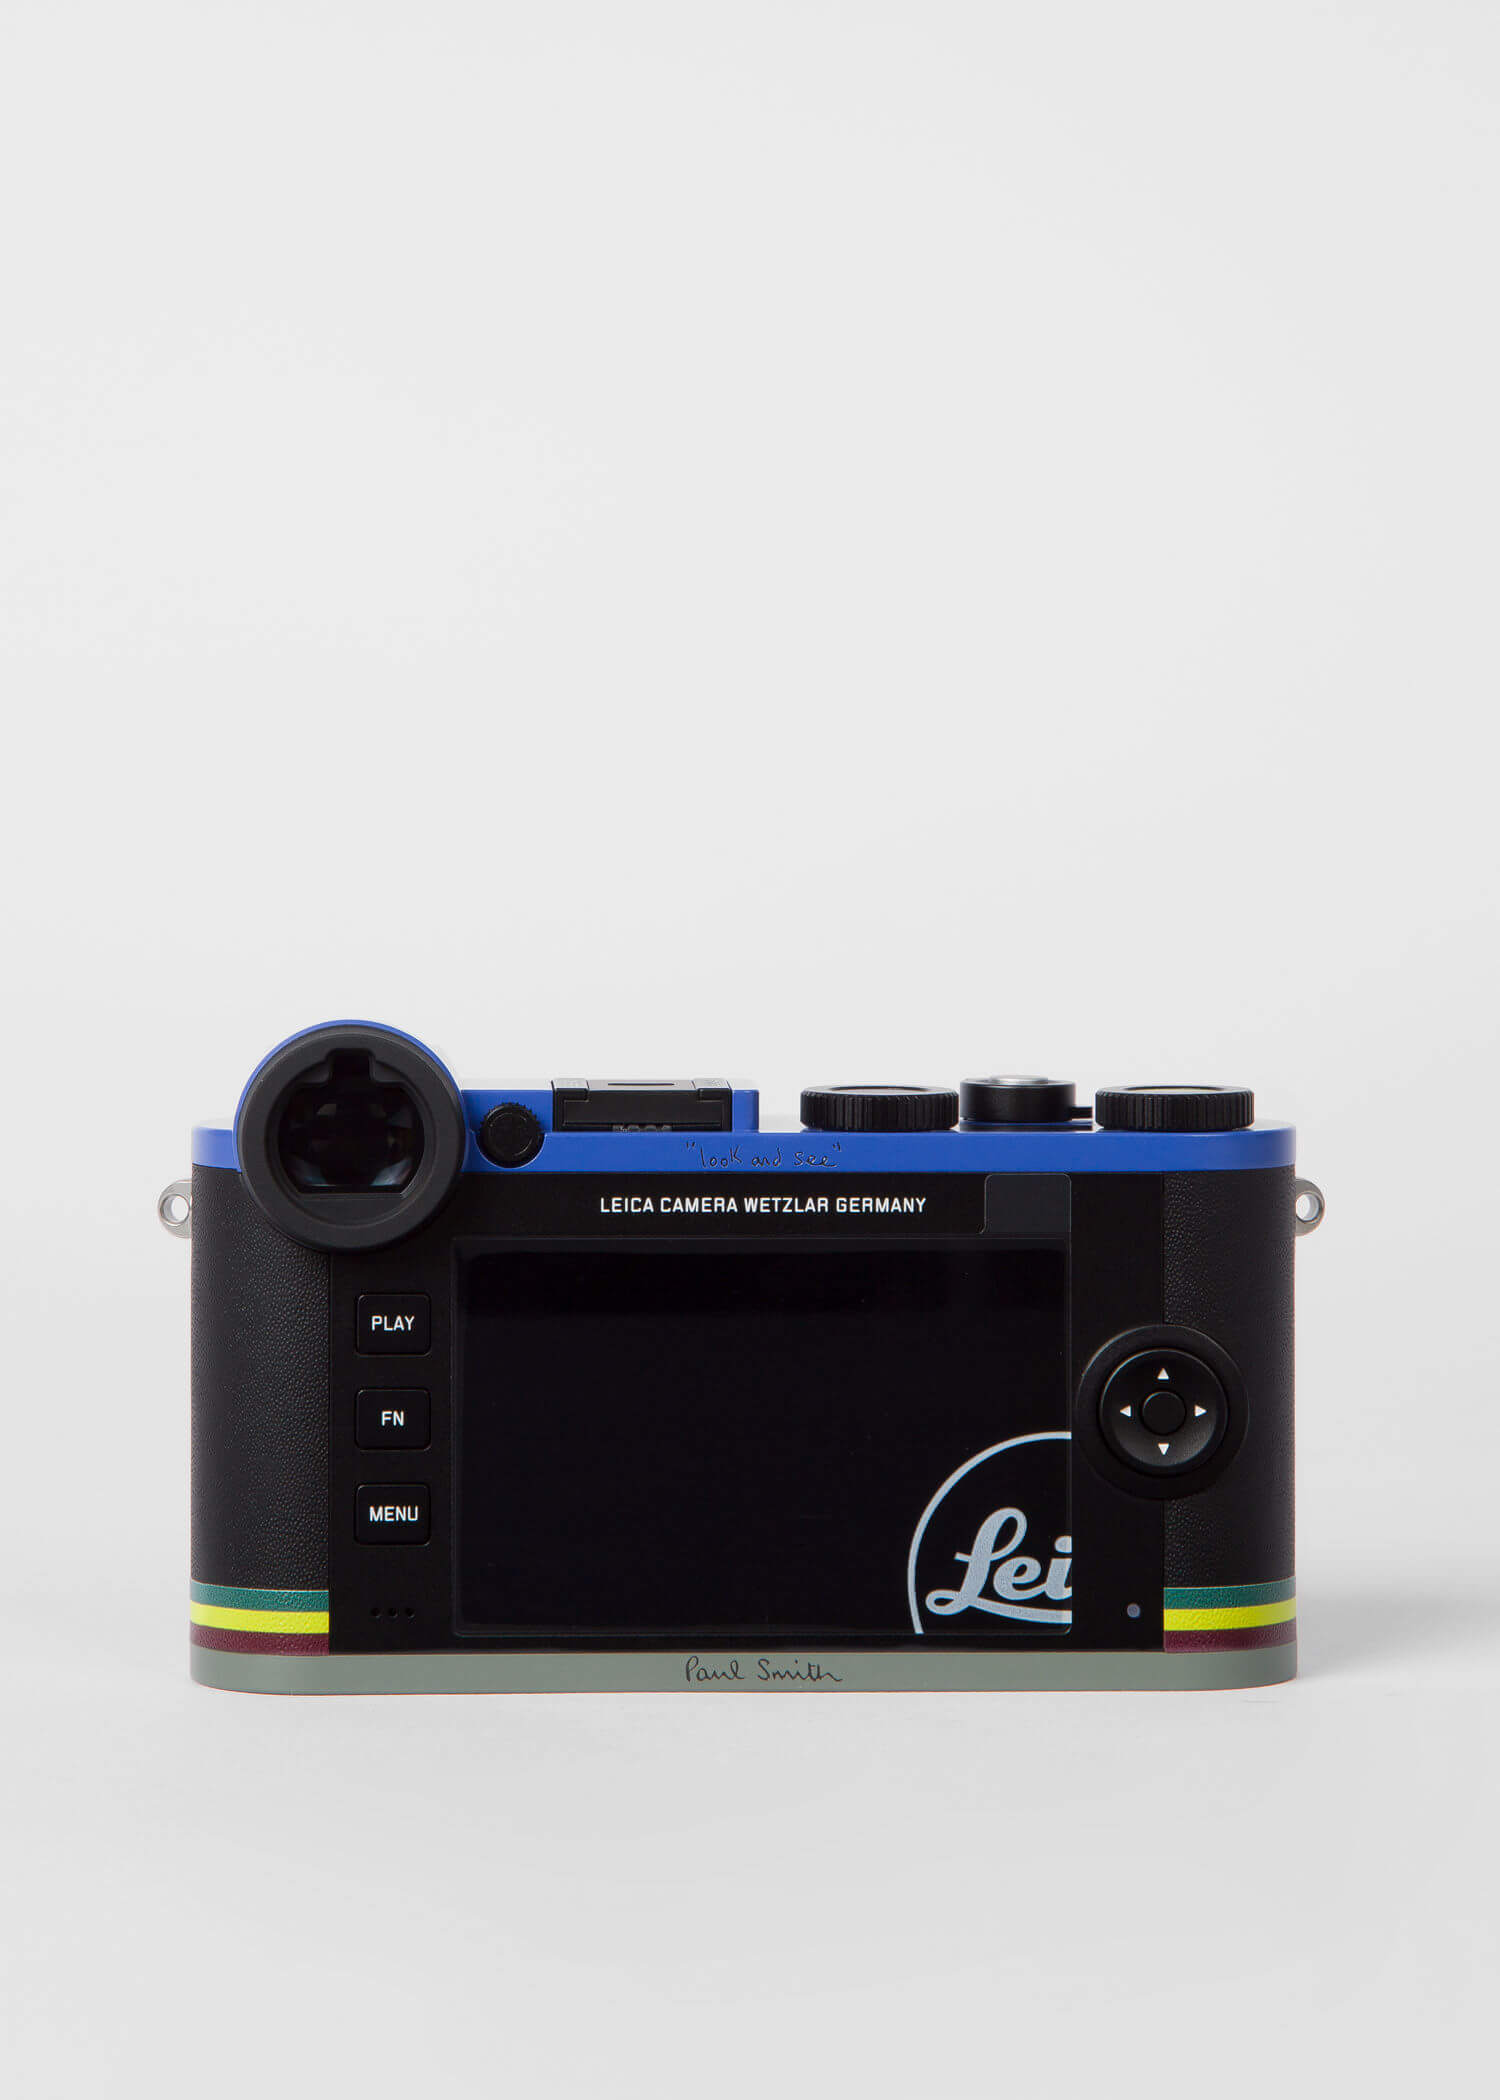 Leica CL Edition Paul Smith Mirrorless Digital Camera with 18mm Lens 5